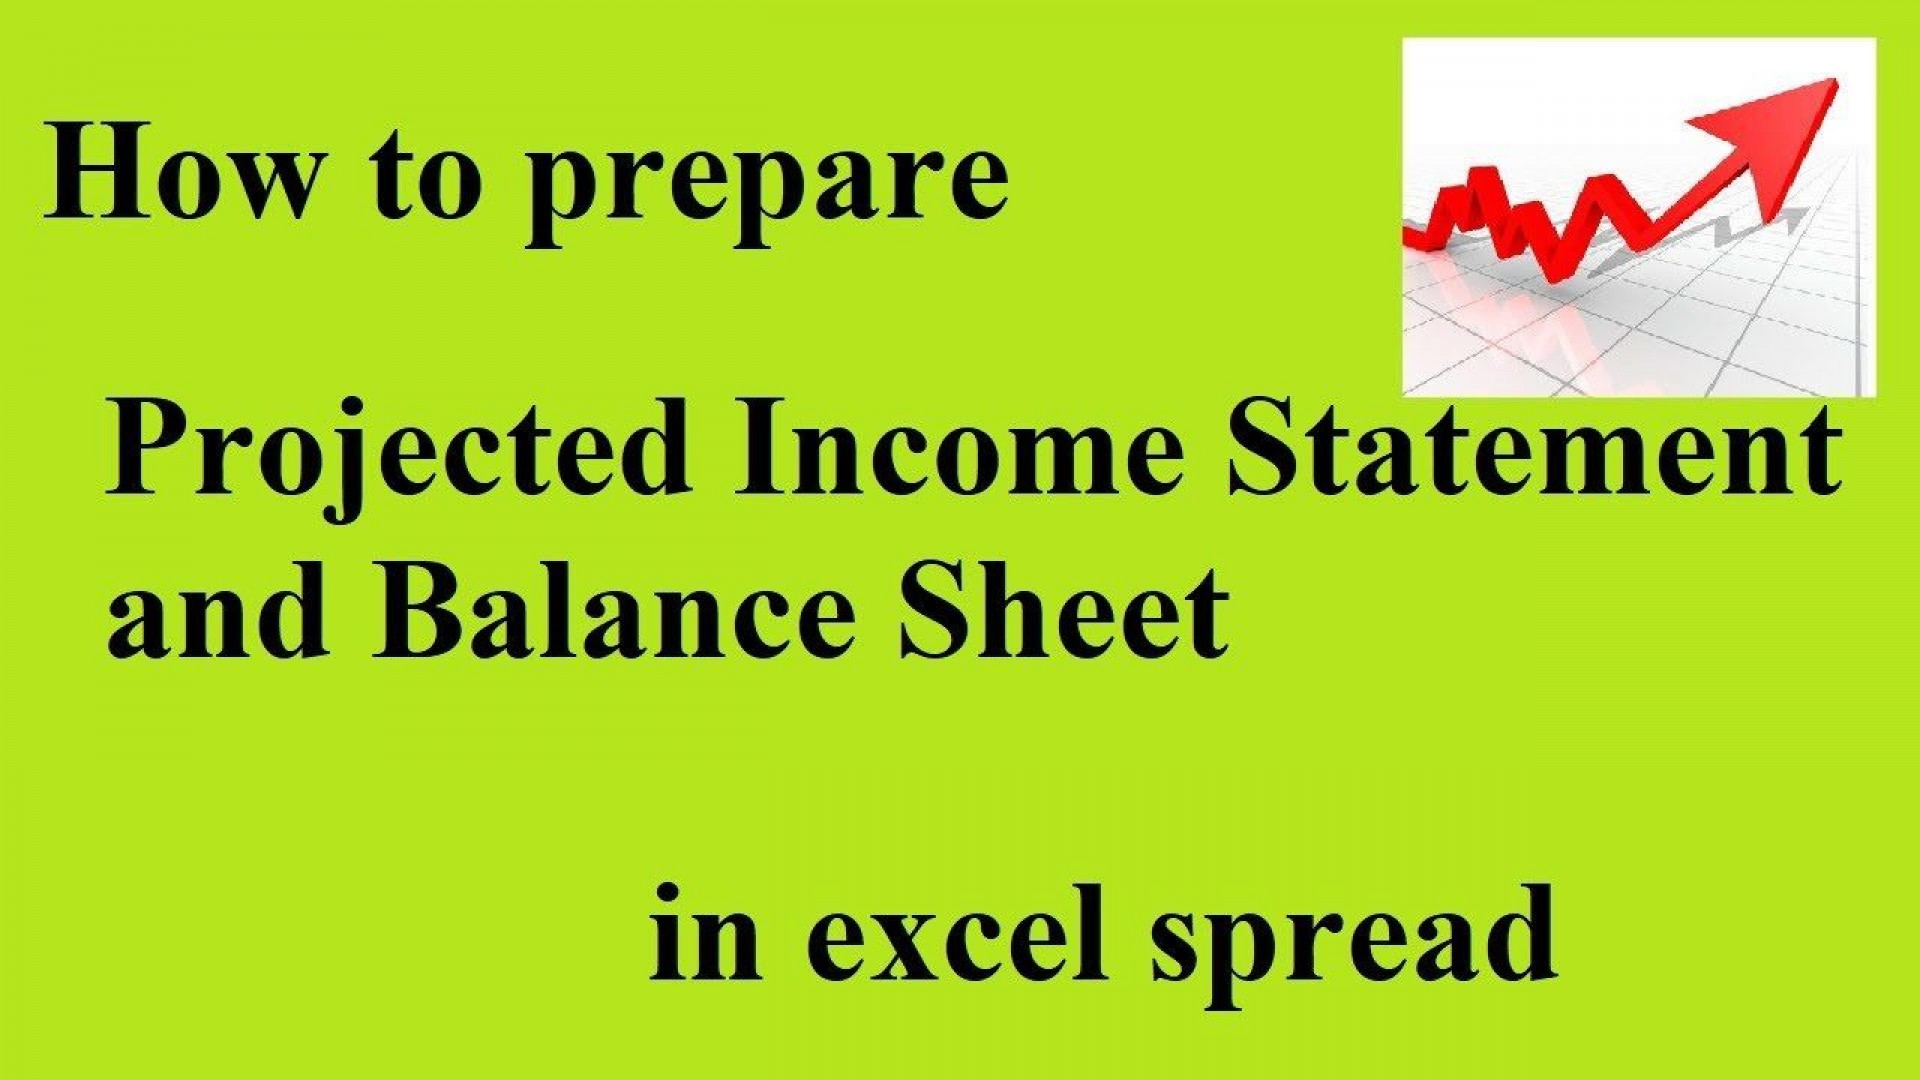 008 Impressive Projected Income Statement Excel Format Idea 1920